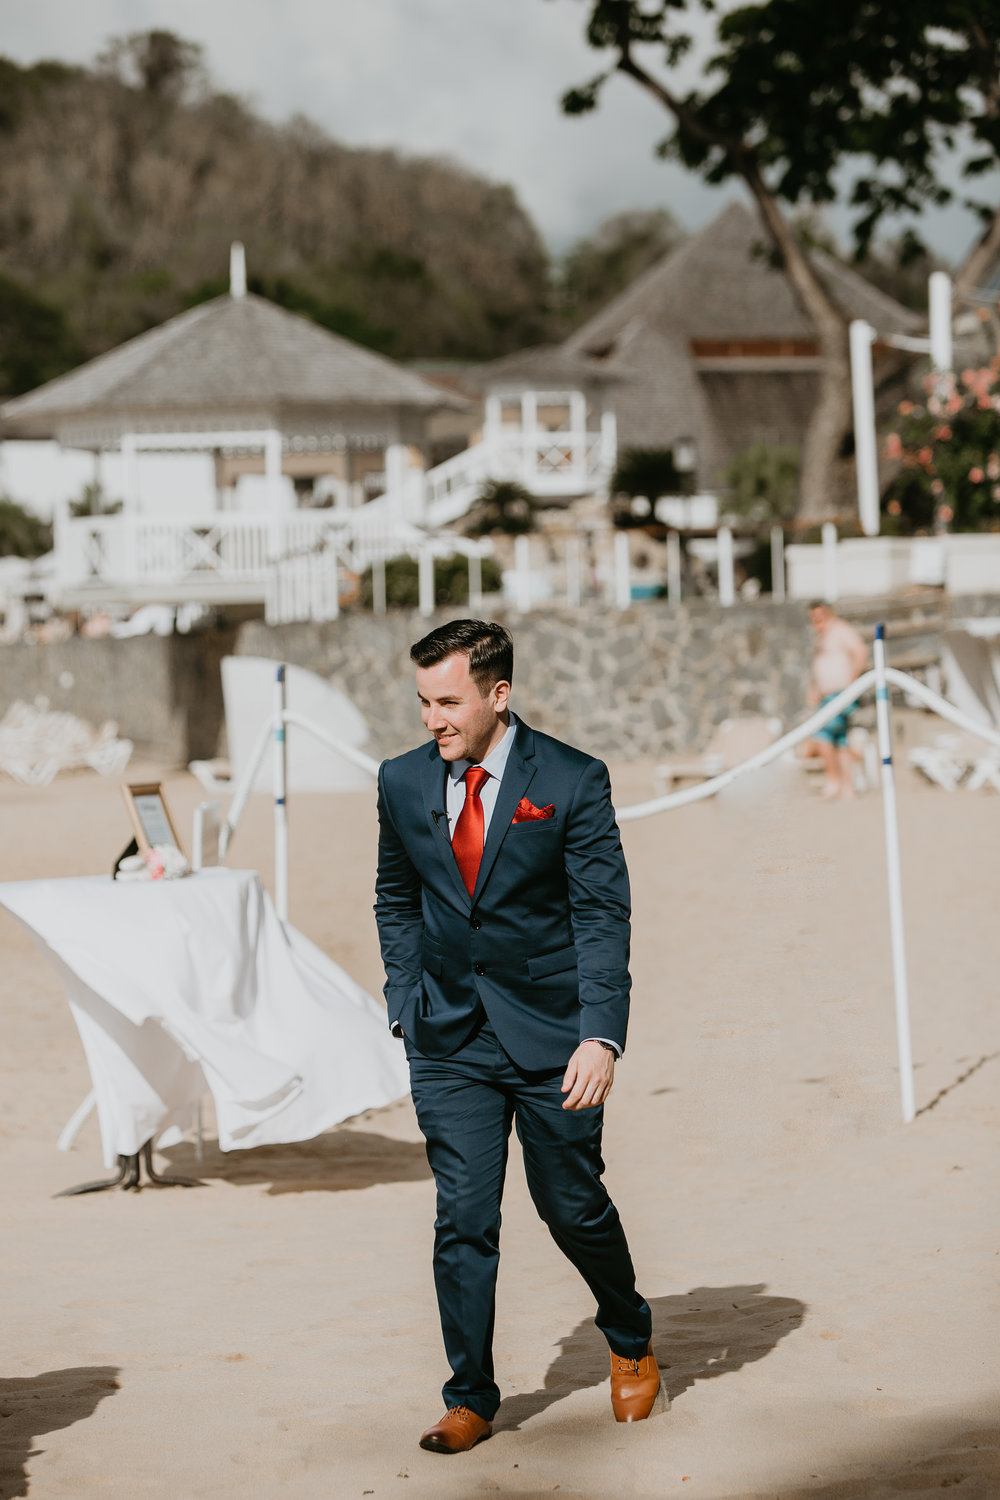 nicole-daacke-photography-destination-wedding-in-st-lucia-sandals-la-toc-intimate-island-wedding-carribean-elopement-photographer-chill-island-wedding-49.jpg